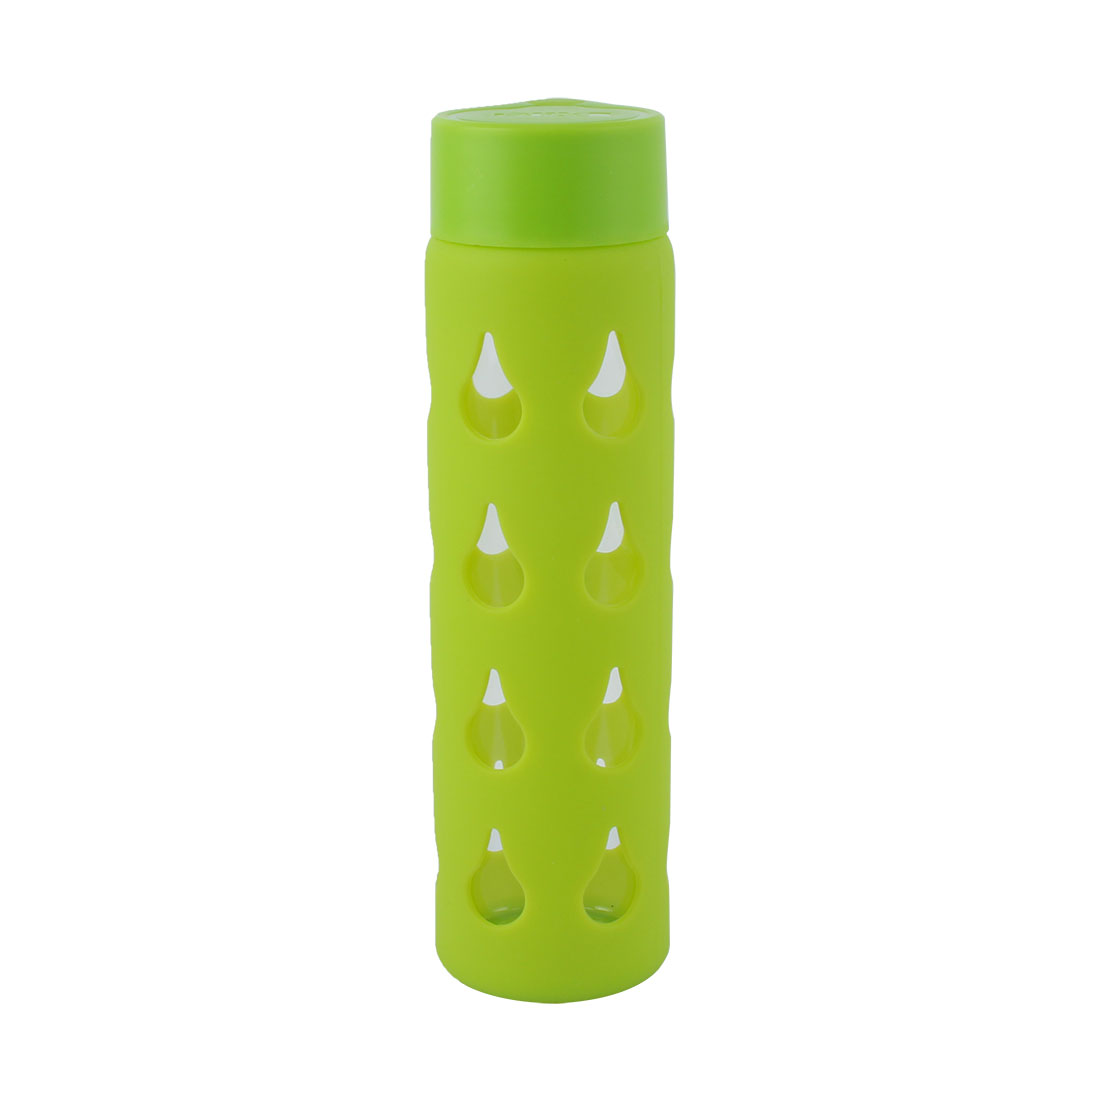 Silicone Sleeve Portable Camping Cup Drinking Mug Sports Water Bottle Green 400ml